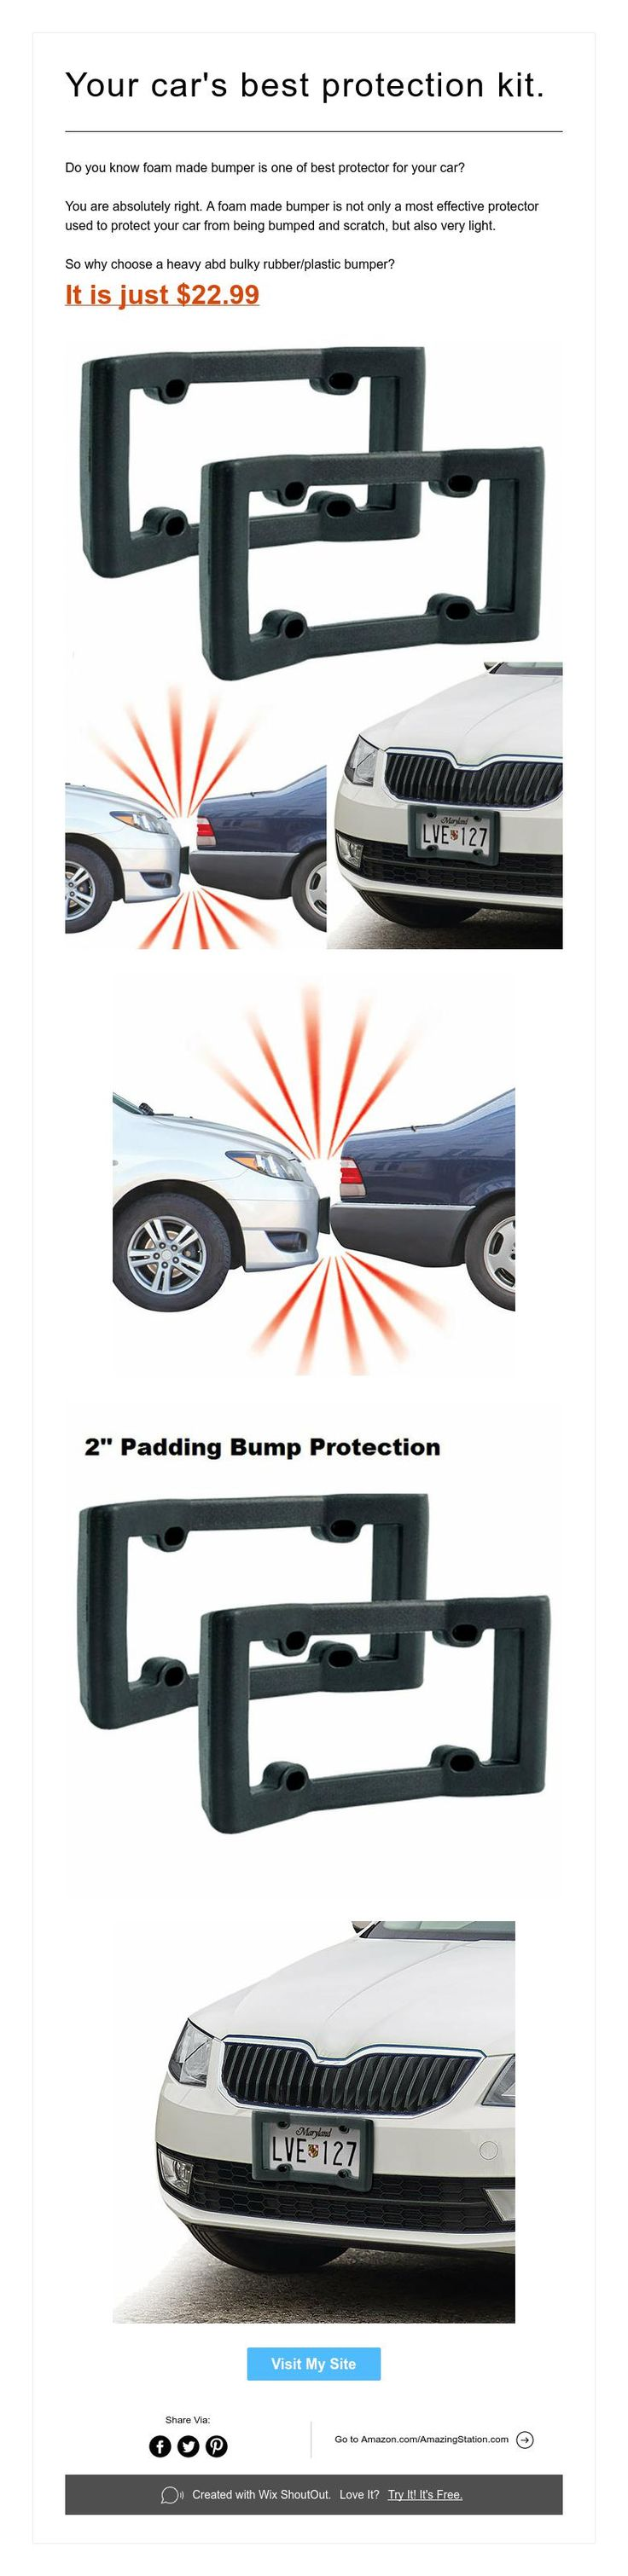 Your car s best protection kit